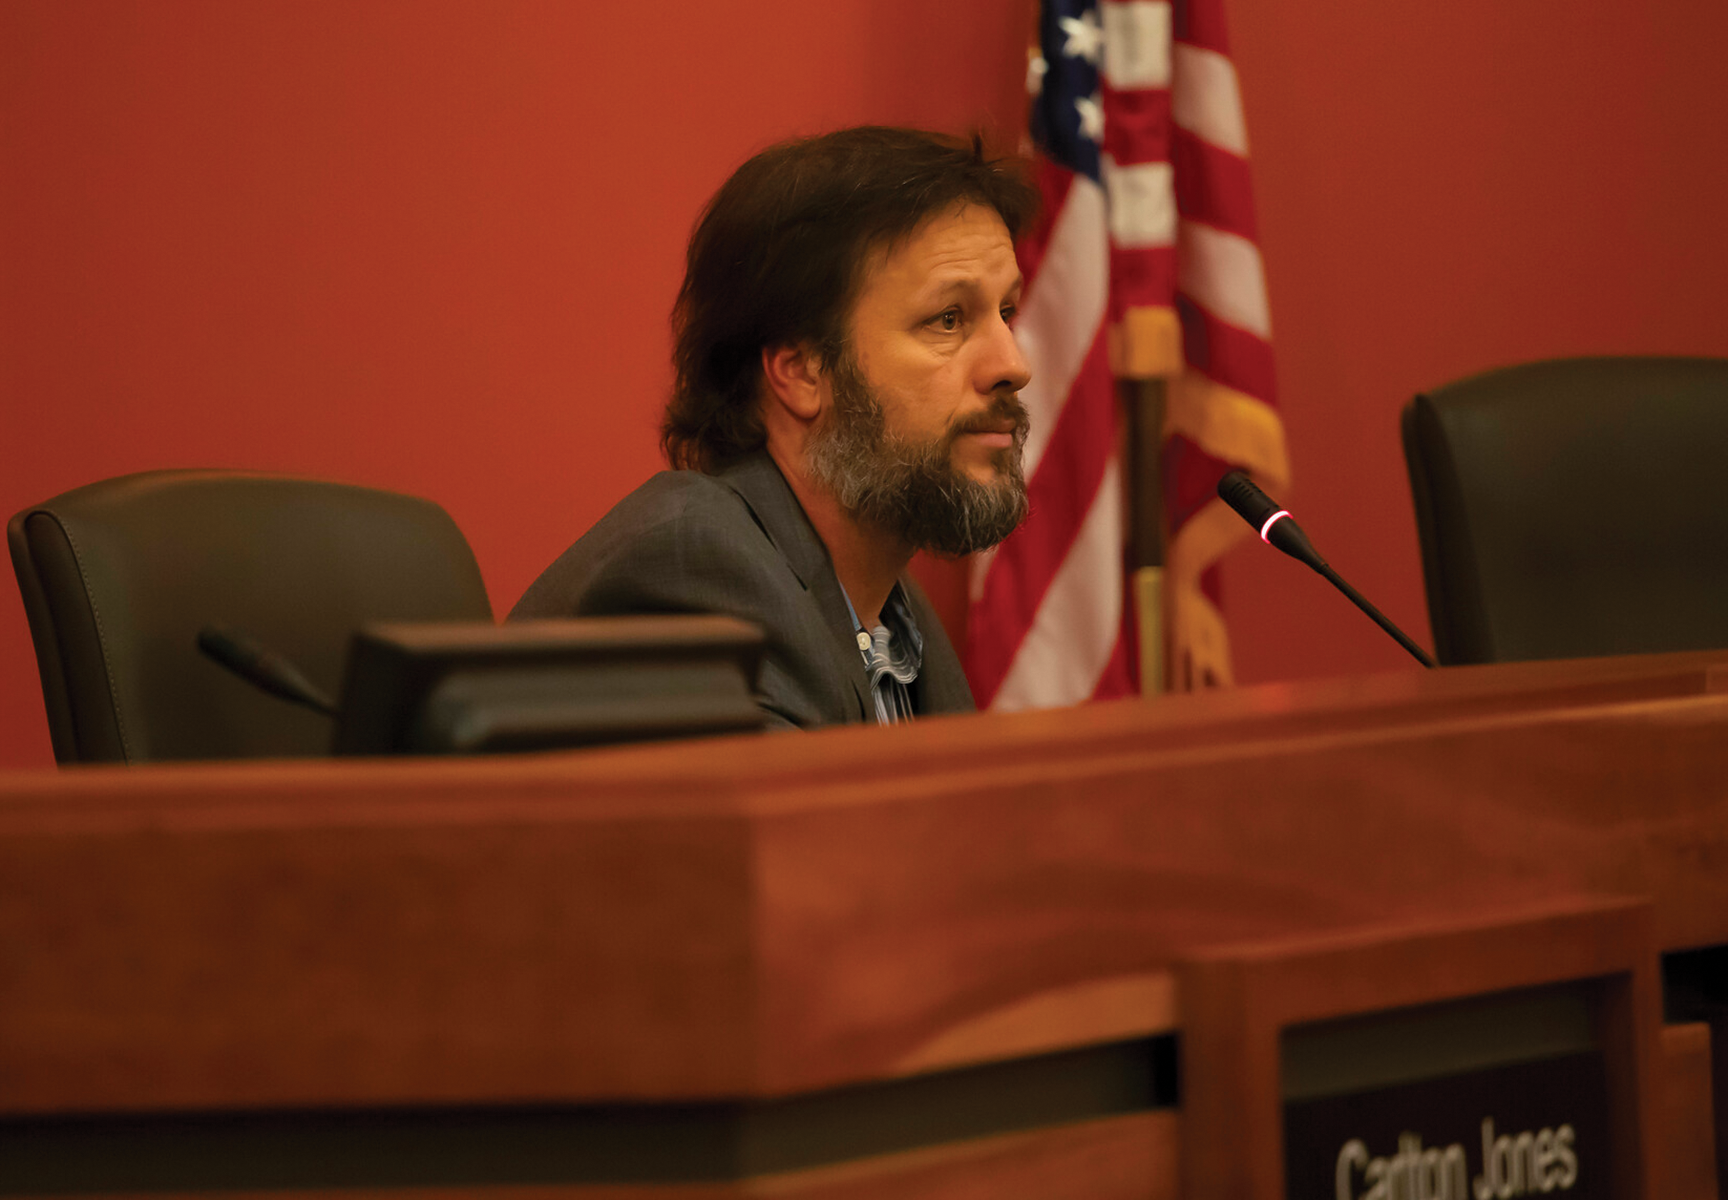 Council tempers flare amidst Nunley damage claims, trip to Vegas